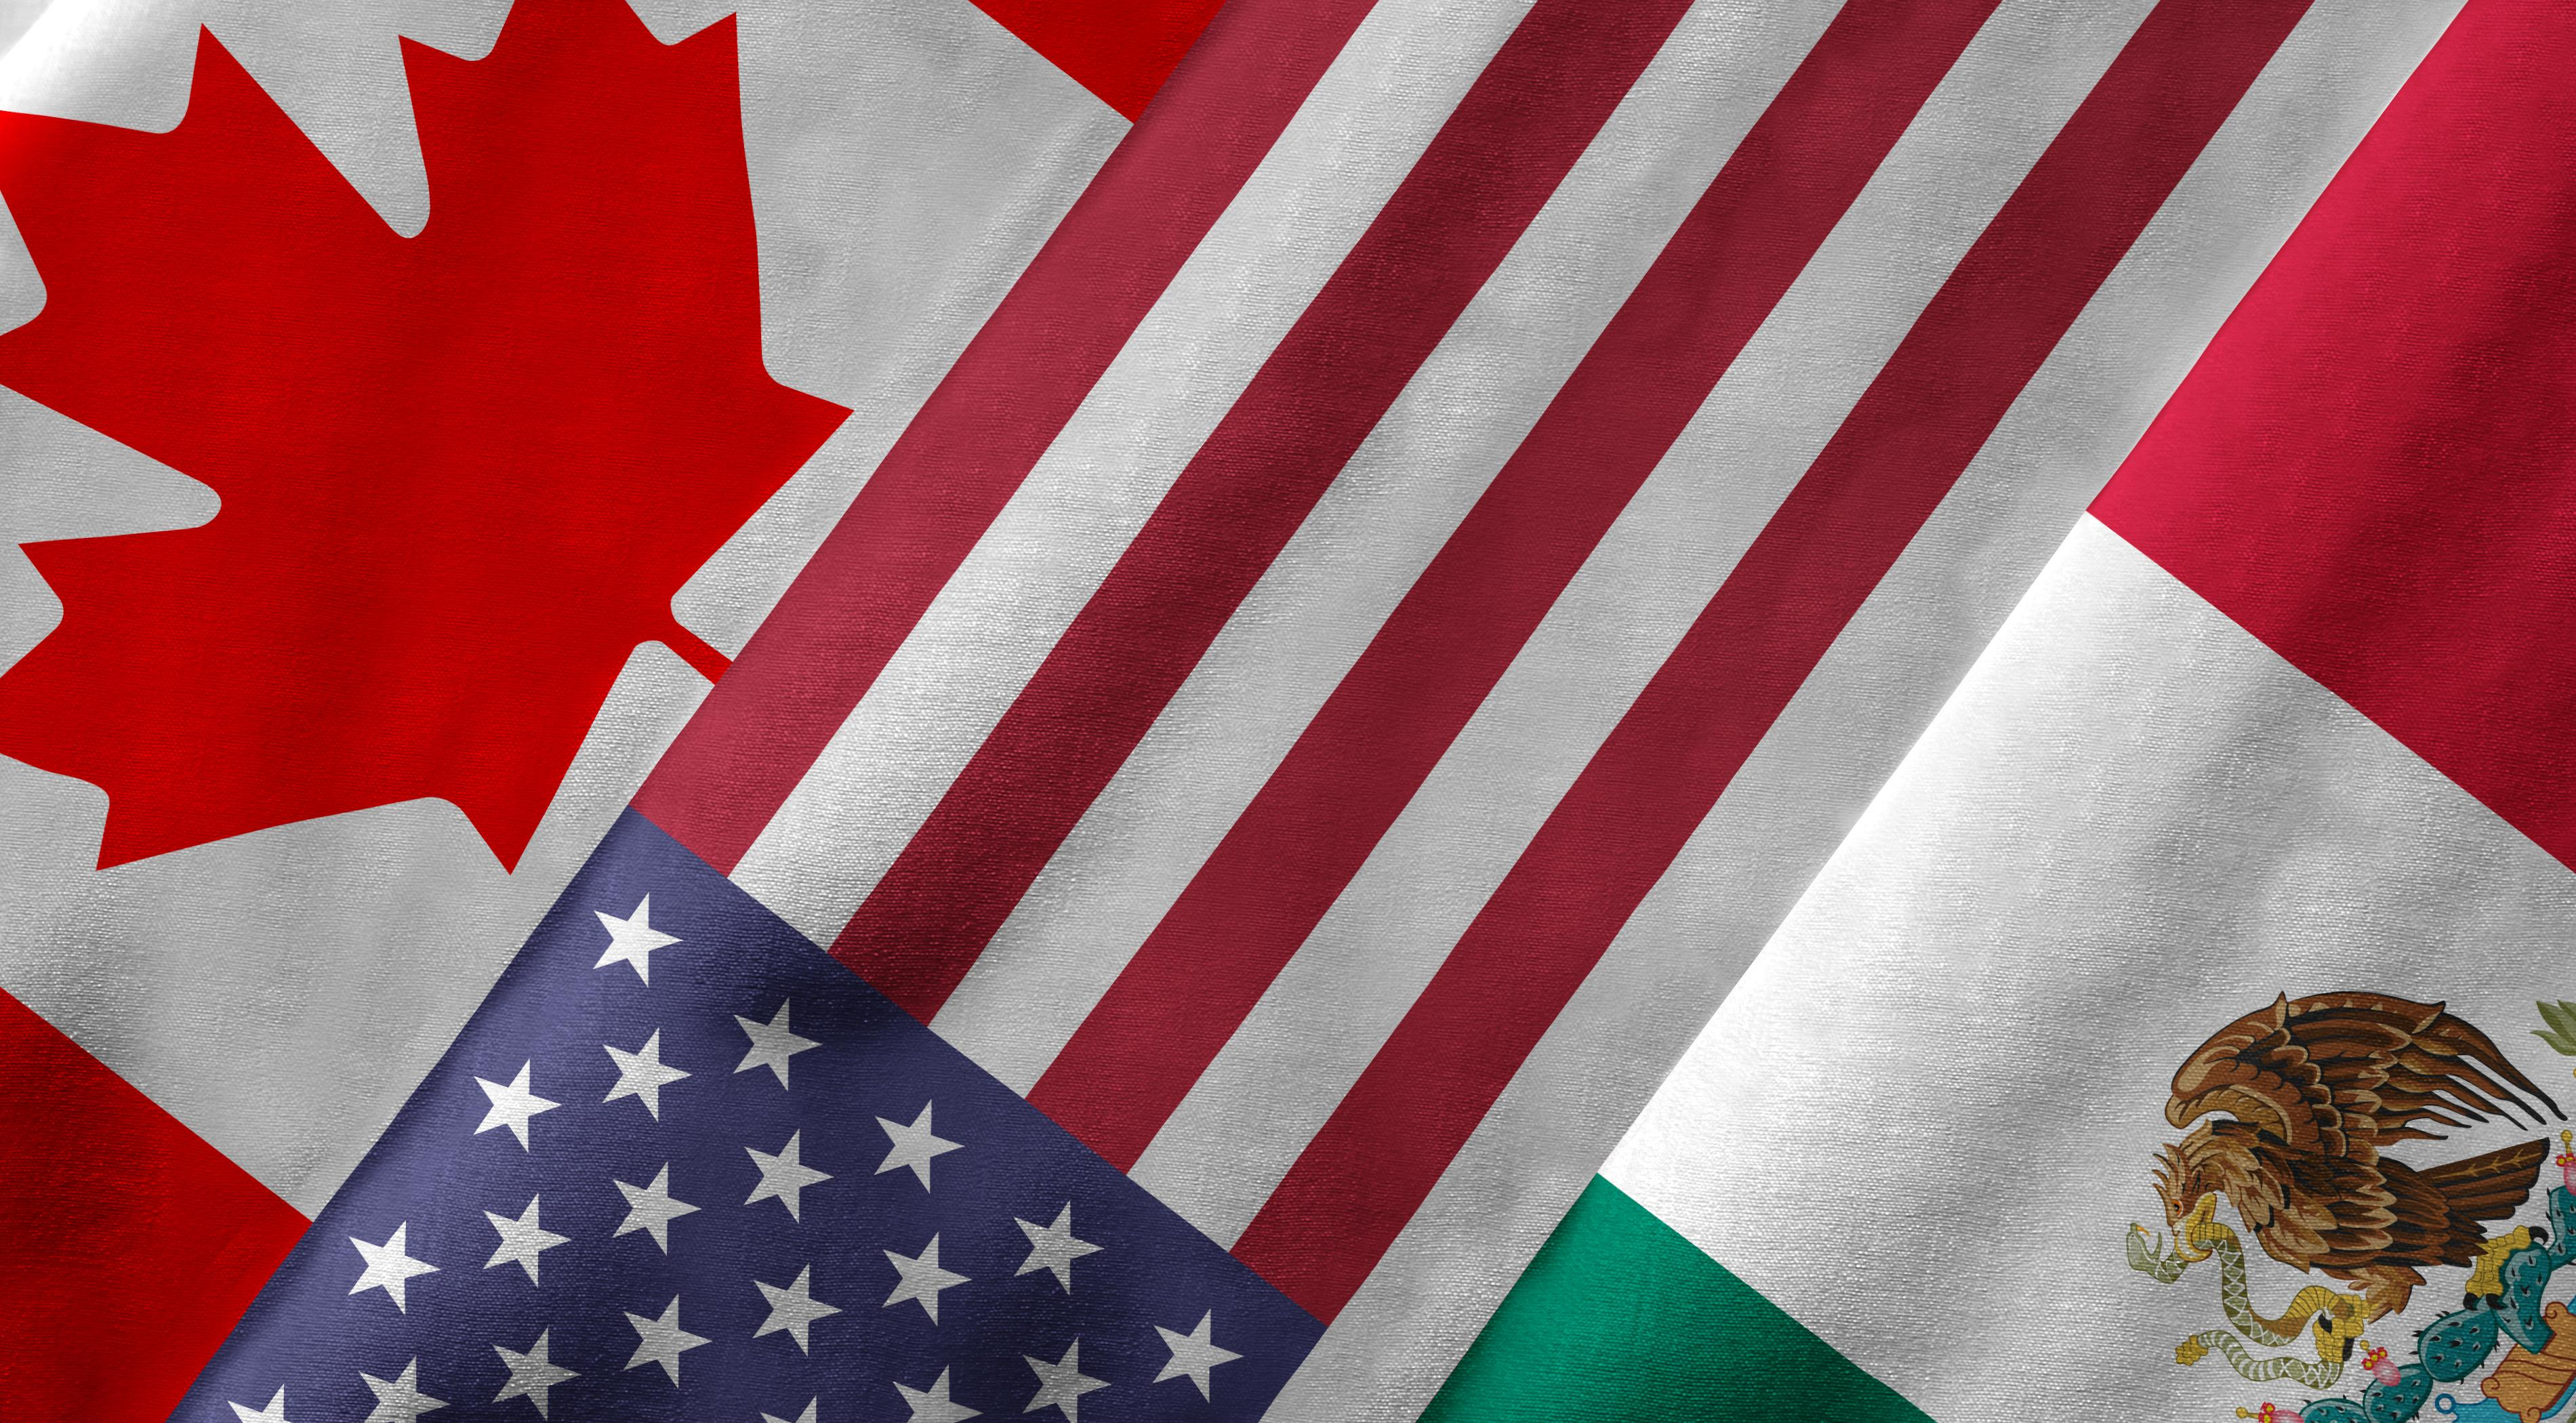 American and Canadian flags.